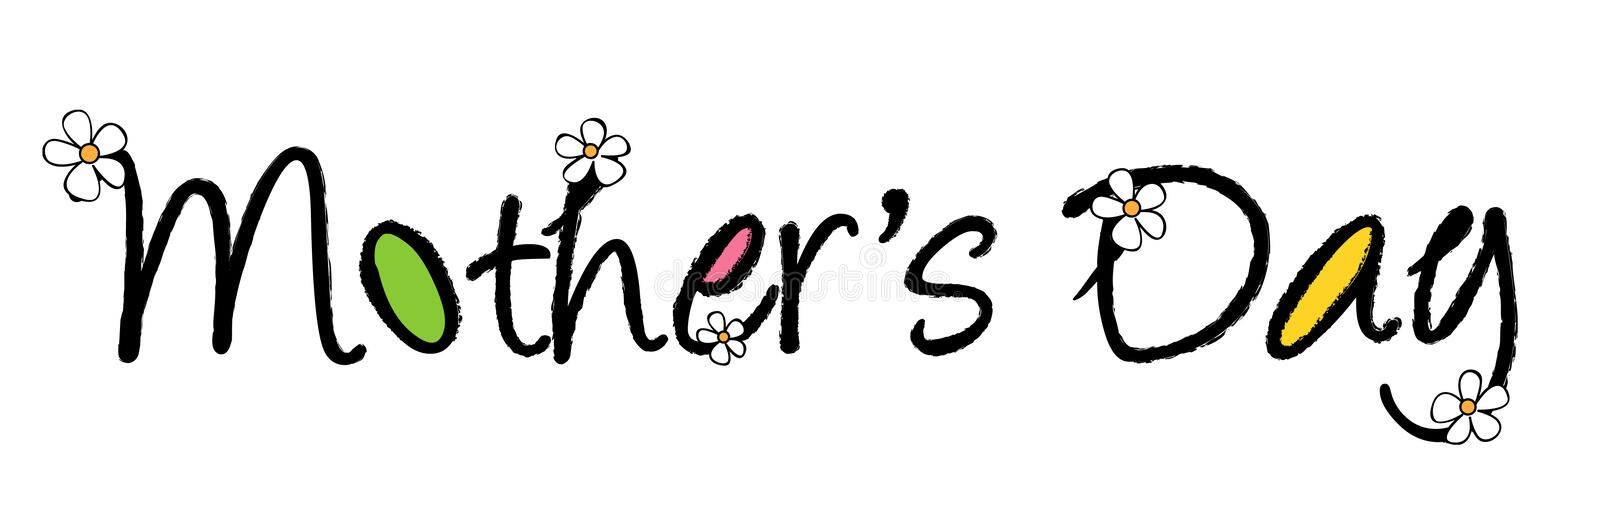 Mothers day. Decorative mother's day Greeting card words with white daisy flowers. Floral wishes for mom on Mother's day